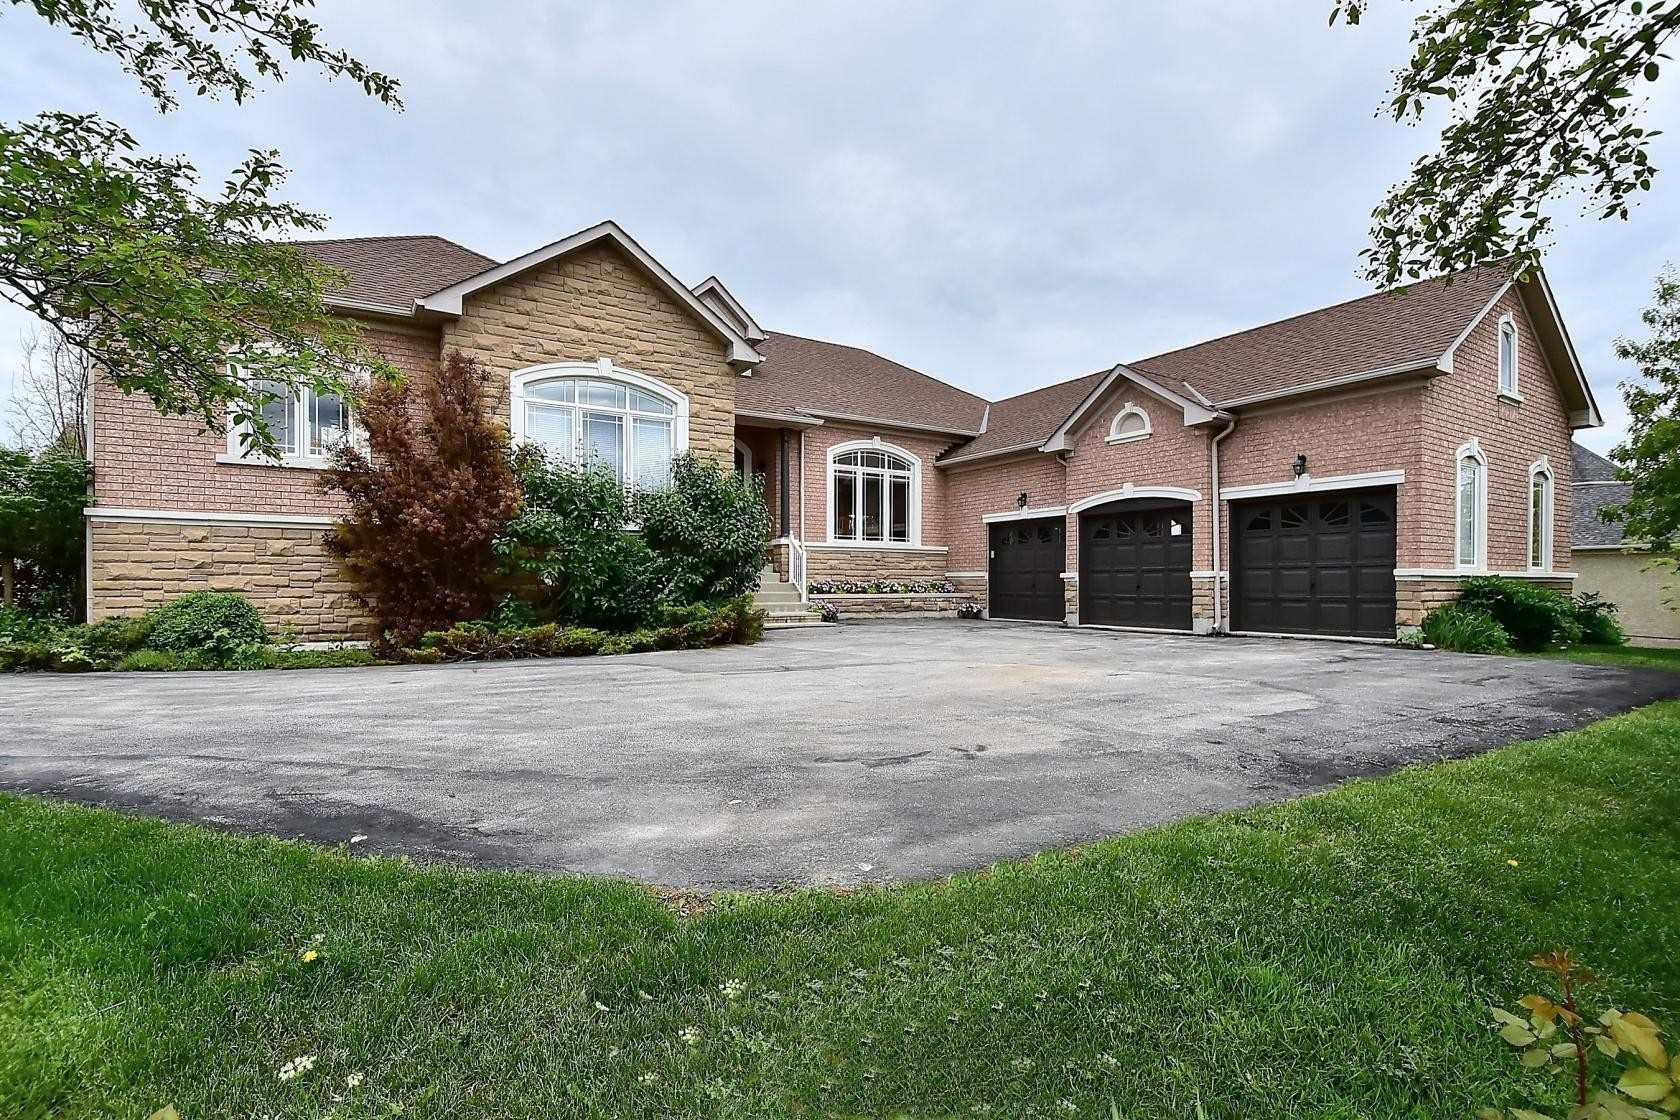 Fabulous Bungalow In Brentwood Estates! Open Concept Layout. Cathedral Ceiling Great Rm Open To Kitchen. Den Has Walk-Up Wet Bar & Access To Shared Ensuite - Could Be 3rd Main Flr Bdrm! Fin W/O Bsmt Has Open Rec/Games Rm With Full Wet Bar, 2 Bdrms, 2 Full Baths, Plus Sep Ent From Grg & R/In For Kitchen & Laundry In Area Used As Home Office. Stunning Backyard - Pool, Patio, Deck Off Kitchen, Cabana With Walk-Up Bar, Shed, Extensive Landscaping!